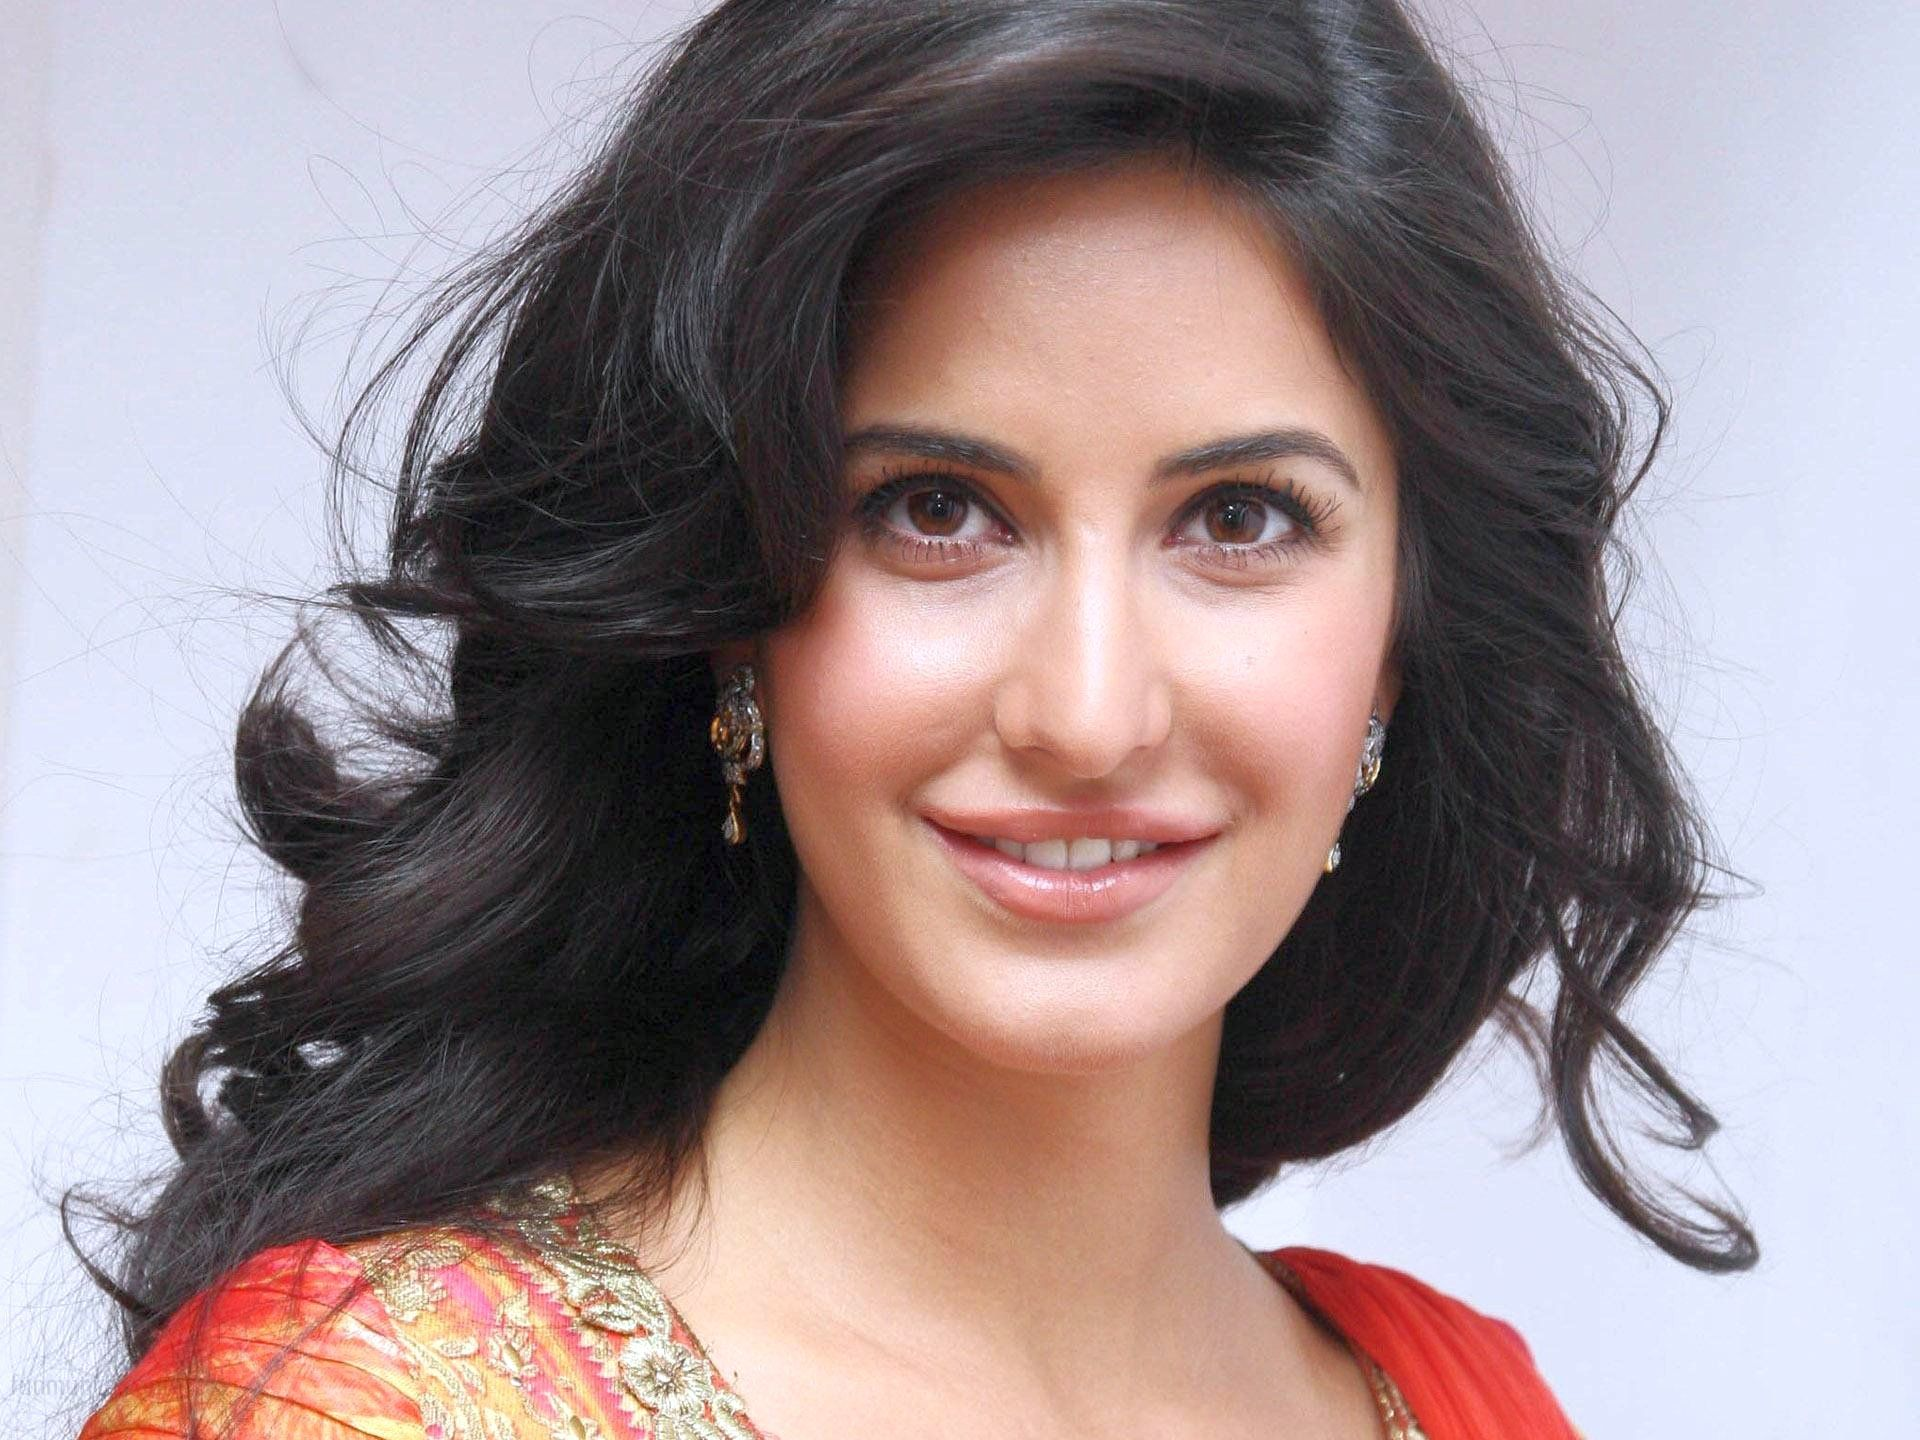 Pictures smiling katrina kaif wallpaper for mobile and cell phone 1920x1440